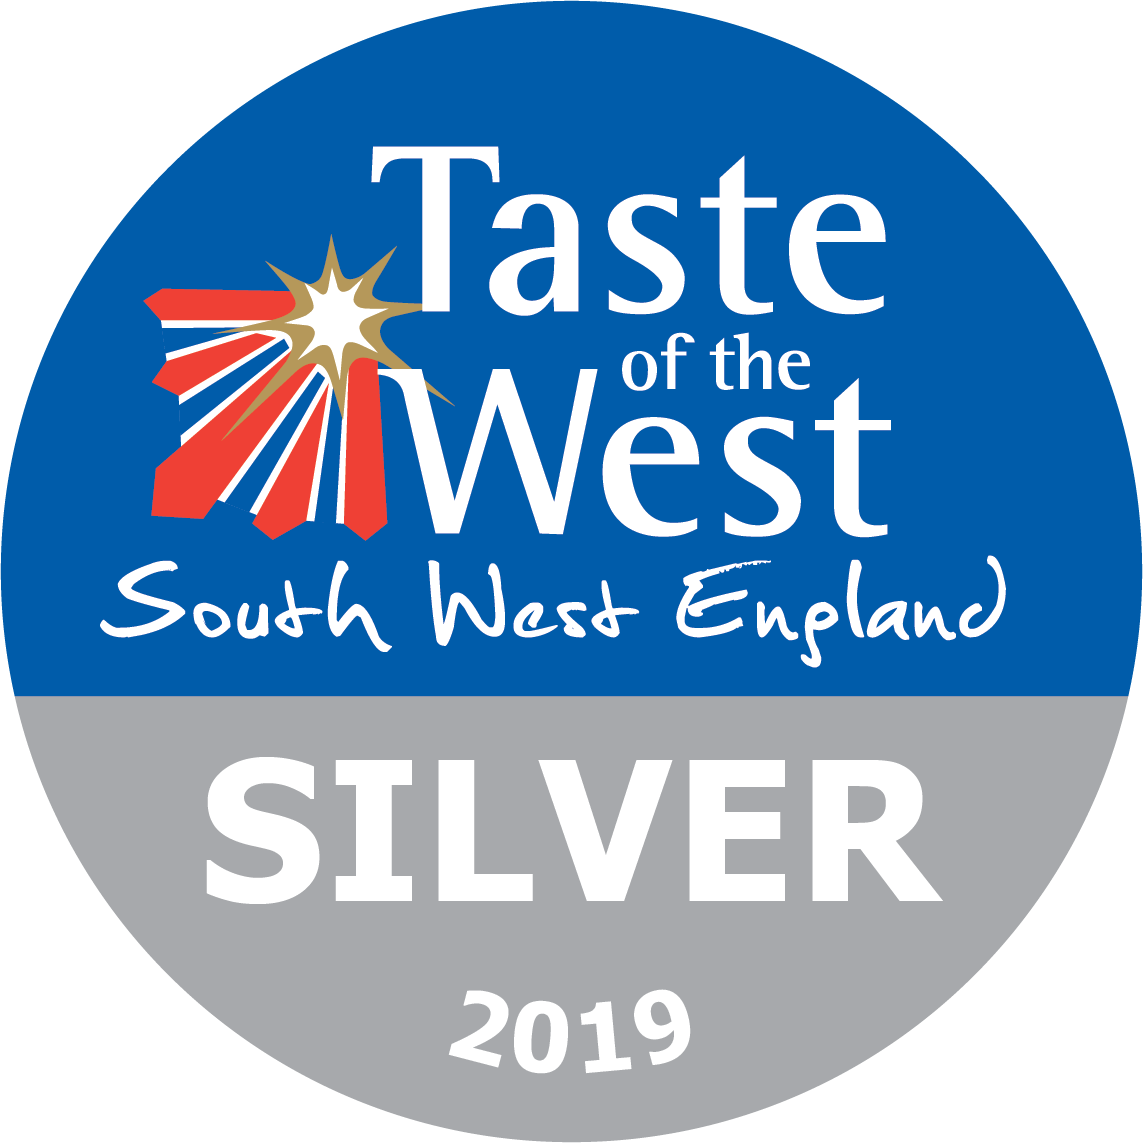 2019 Silver Taste of the West Award